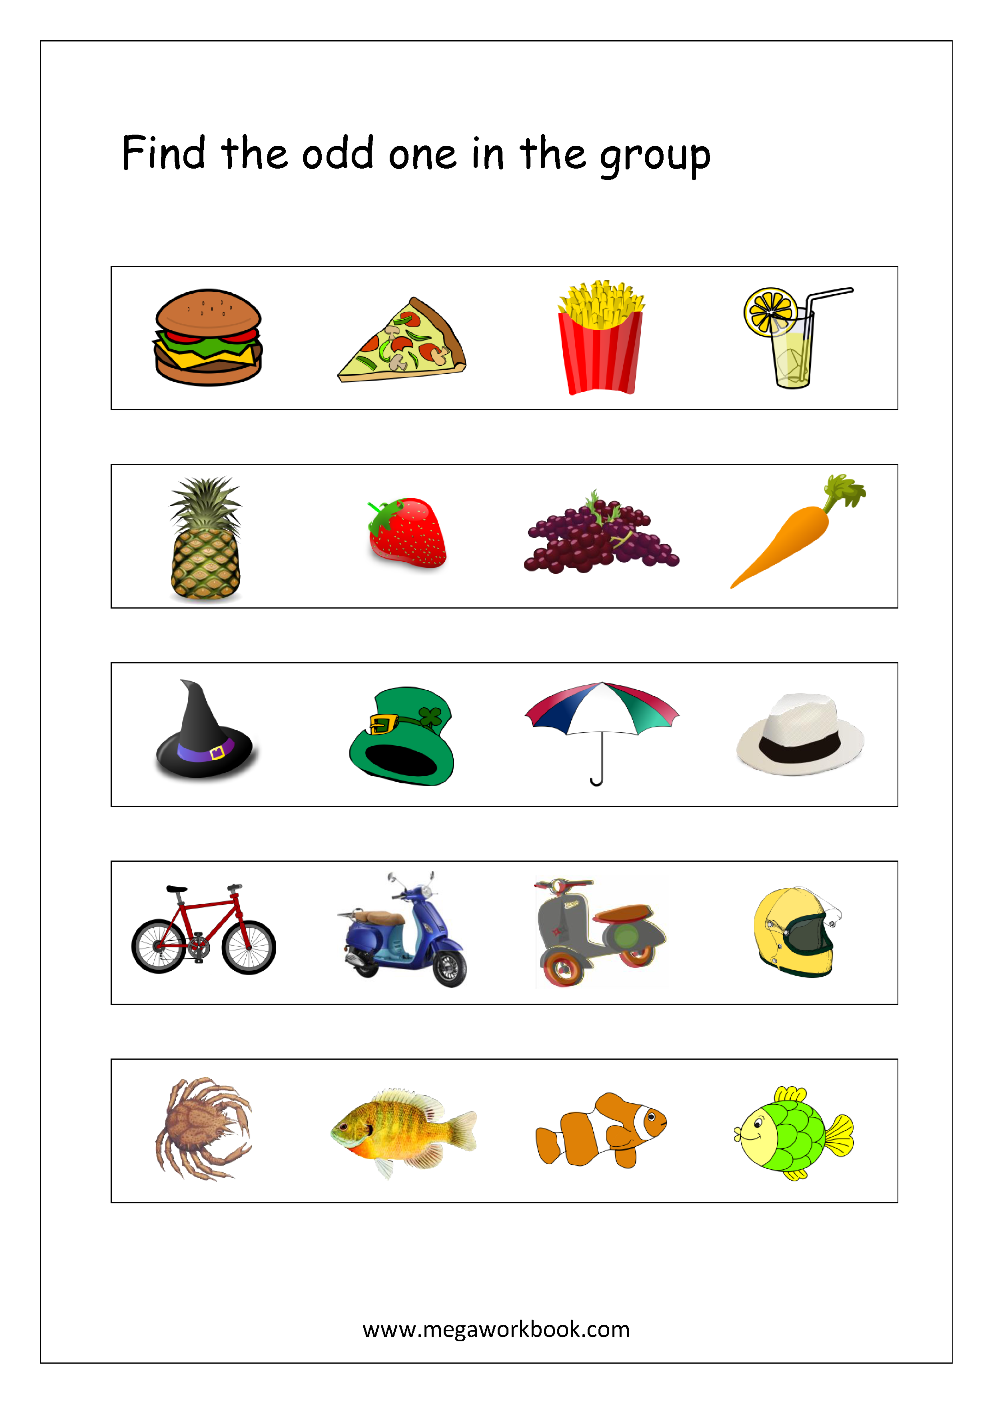 Odd One Out Worksheet 4 Deepu Pinterest Worksheets Math And